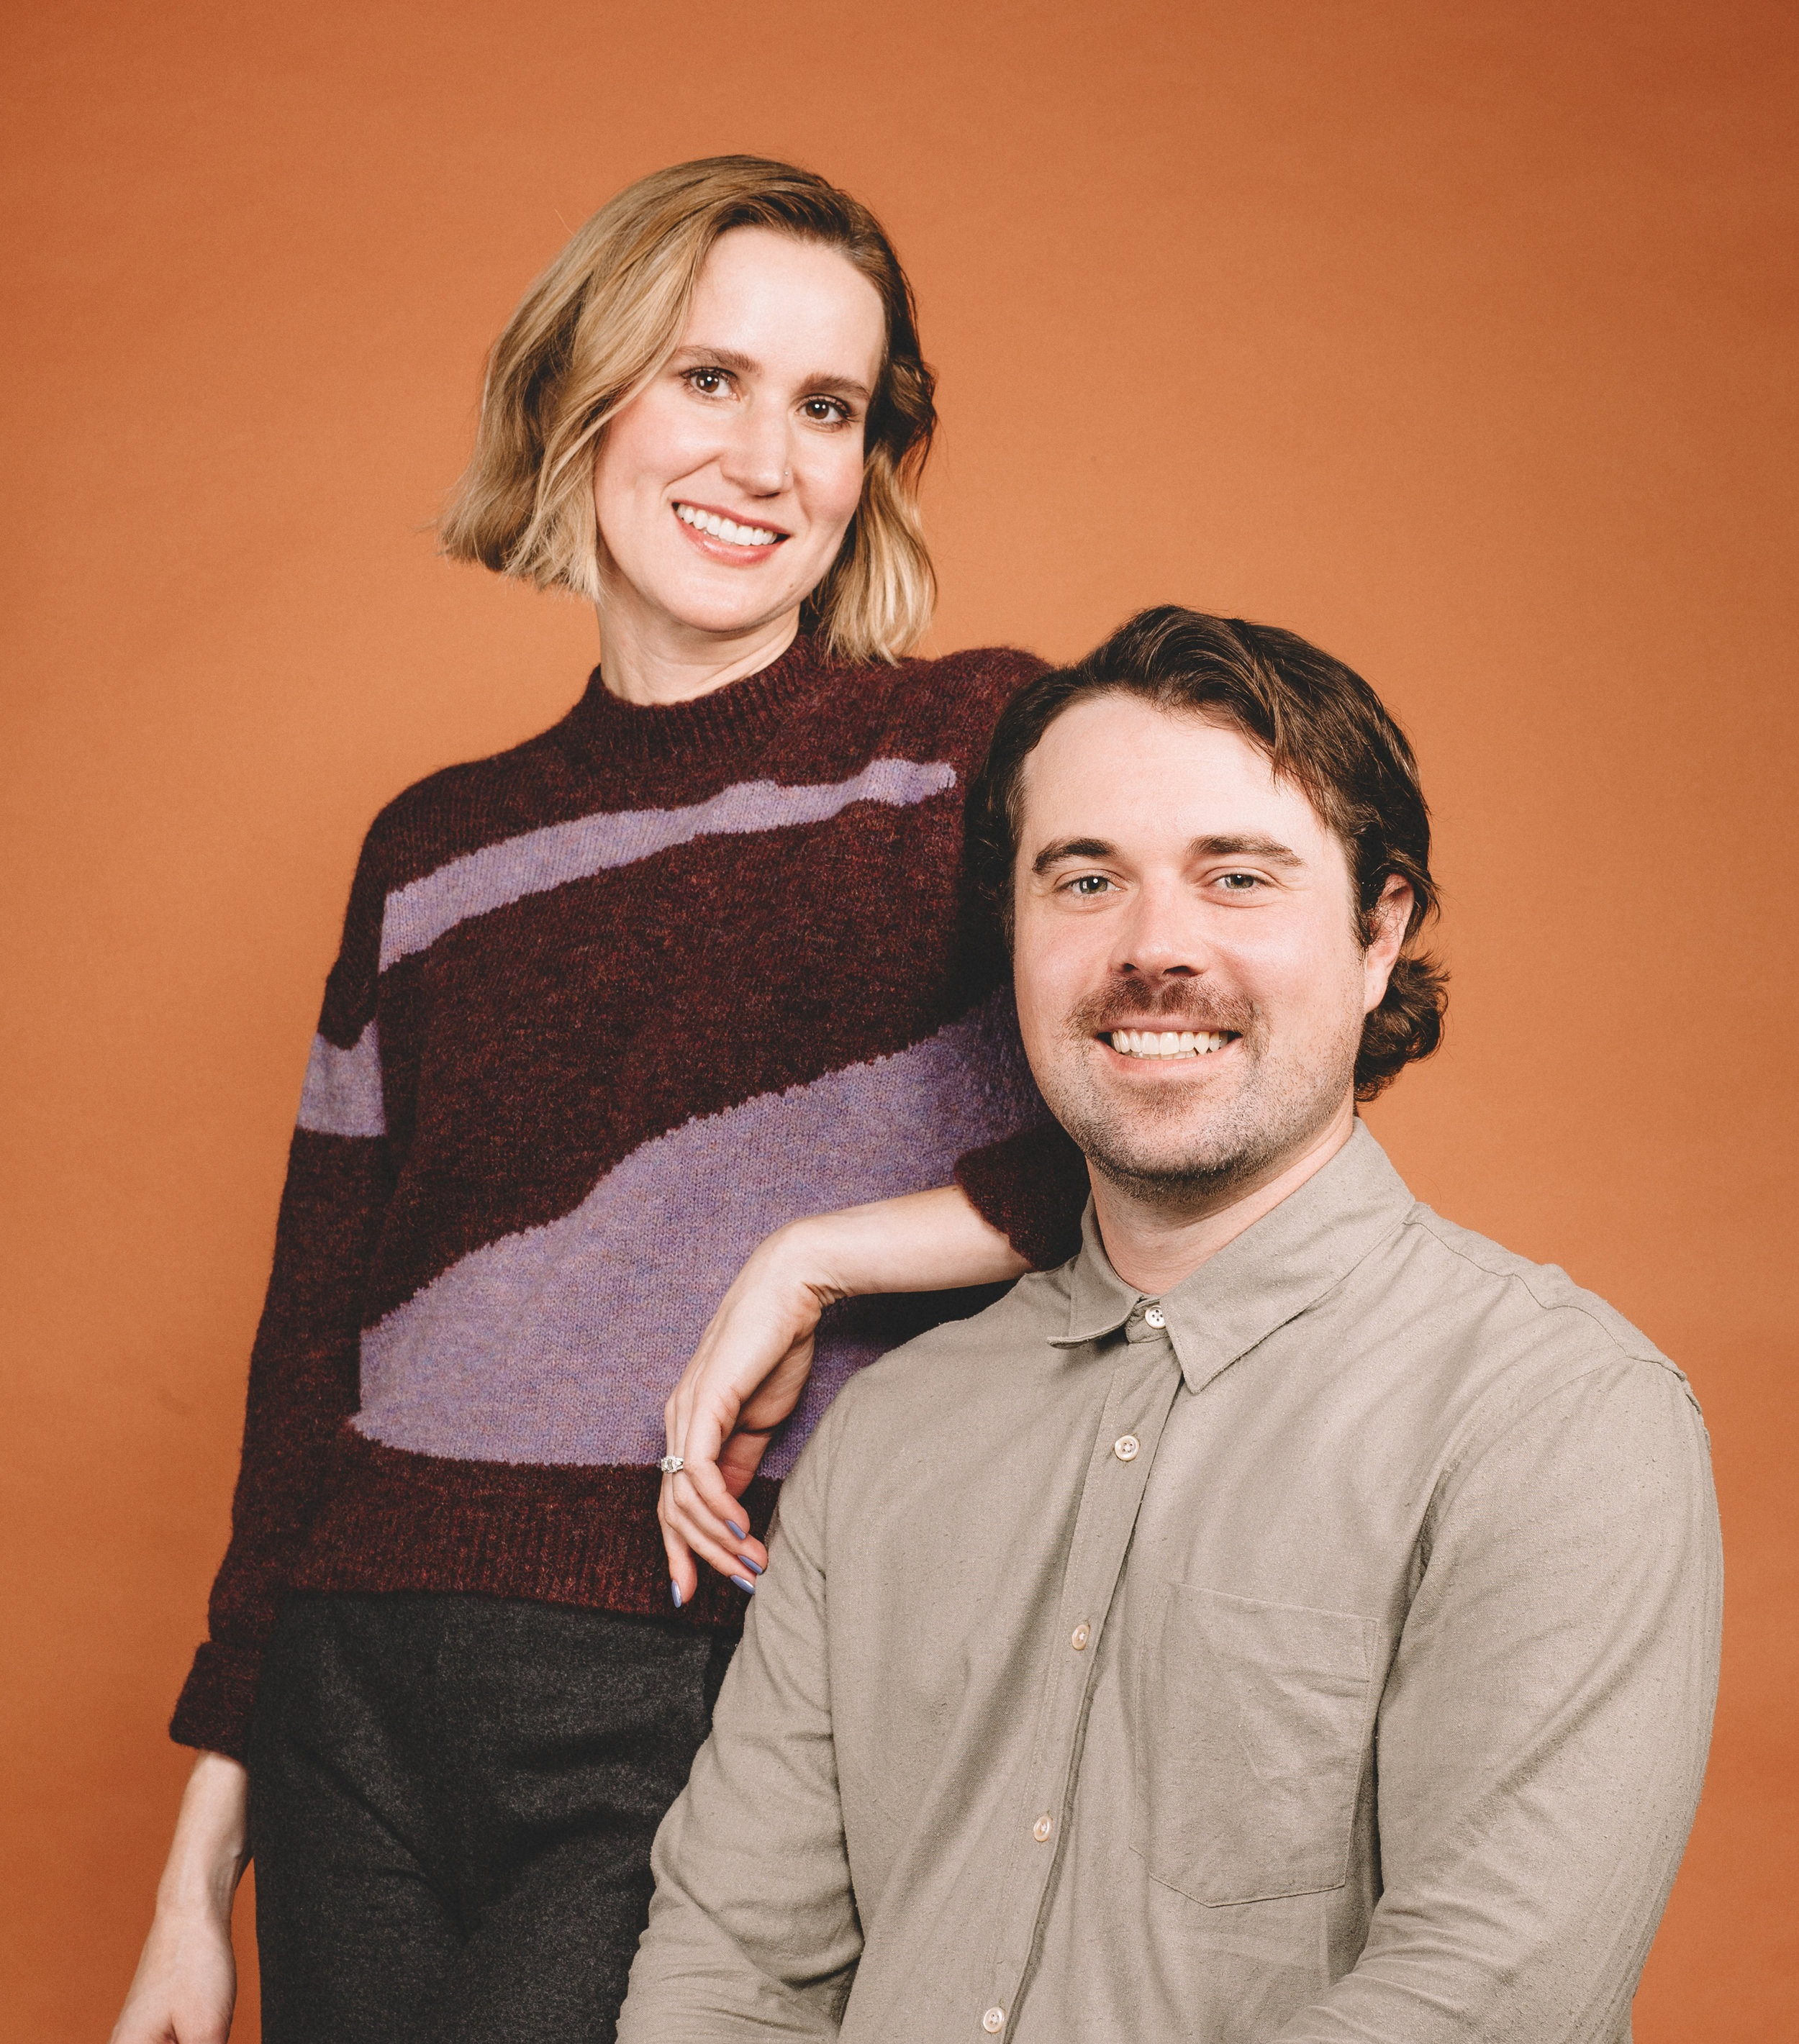 Meet our founders. - Color. was founded by entrepreneurs Jaime Schmidt and Chris Cantino in 2018. Jaime founded Schmidt's Naturals in the couple's small Portland, OR kitchen, and led the company to acquisition by Unilever in December 2017 alongside her partner Chris.Today, Jaime and Chris are focused on returning to their roots as makers and entrepreneurs, embedding themselves in the creative community and launching new projects designed to support emerging entrepreneurs through investment and thought leadership.Contact Jaime and Chris ➝